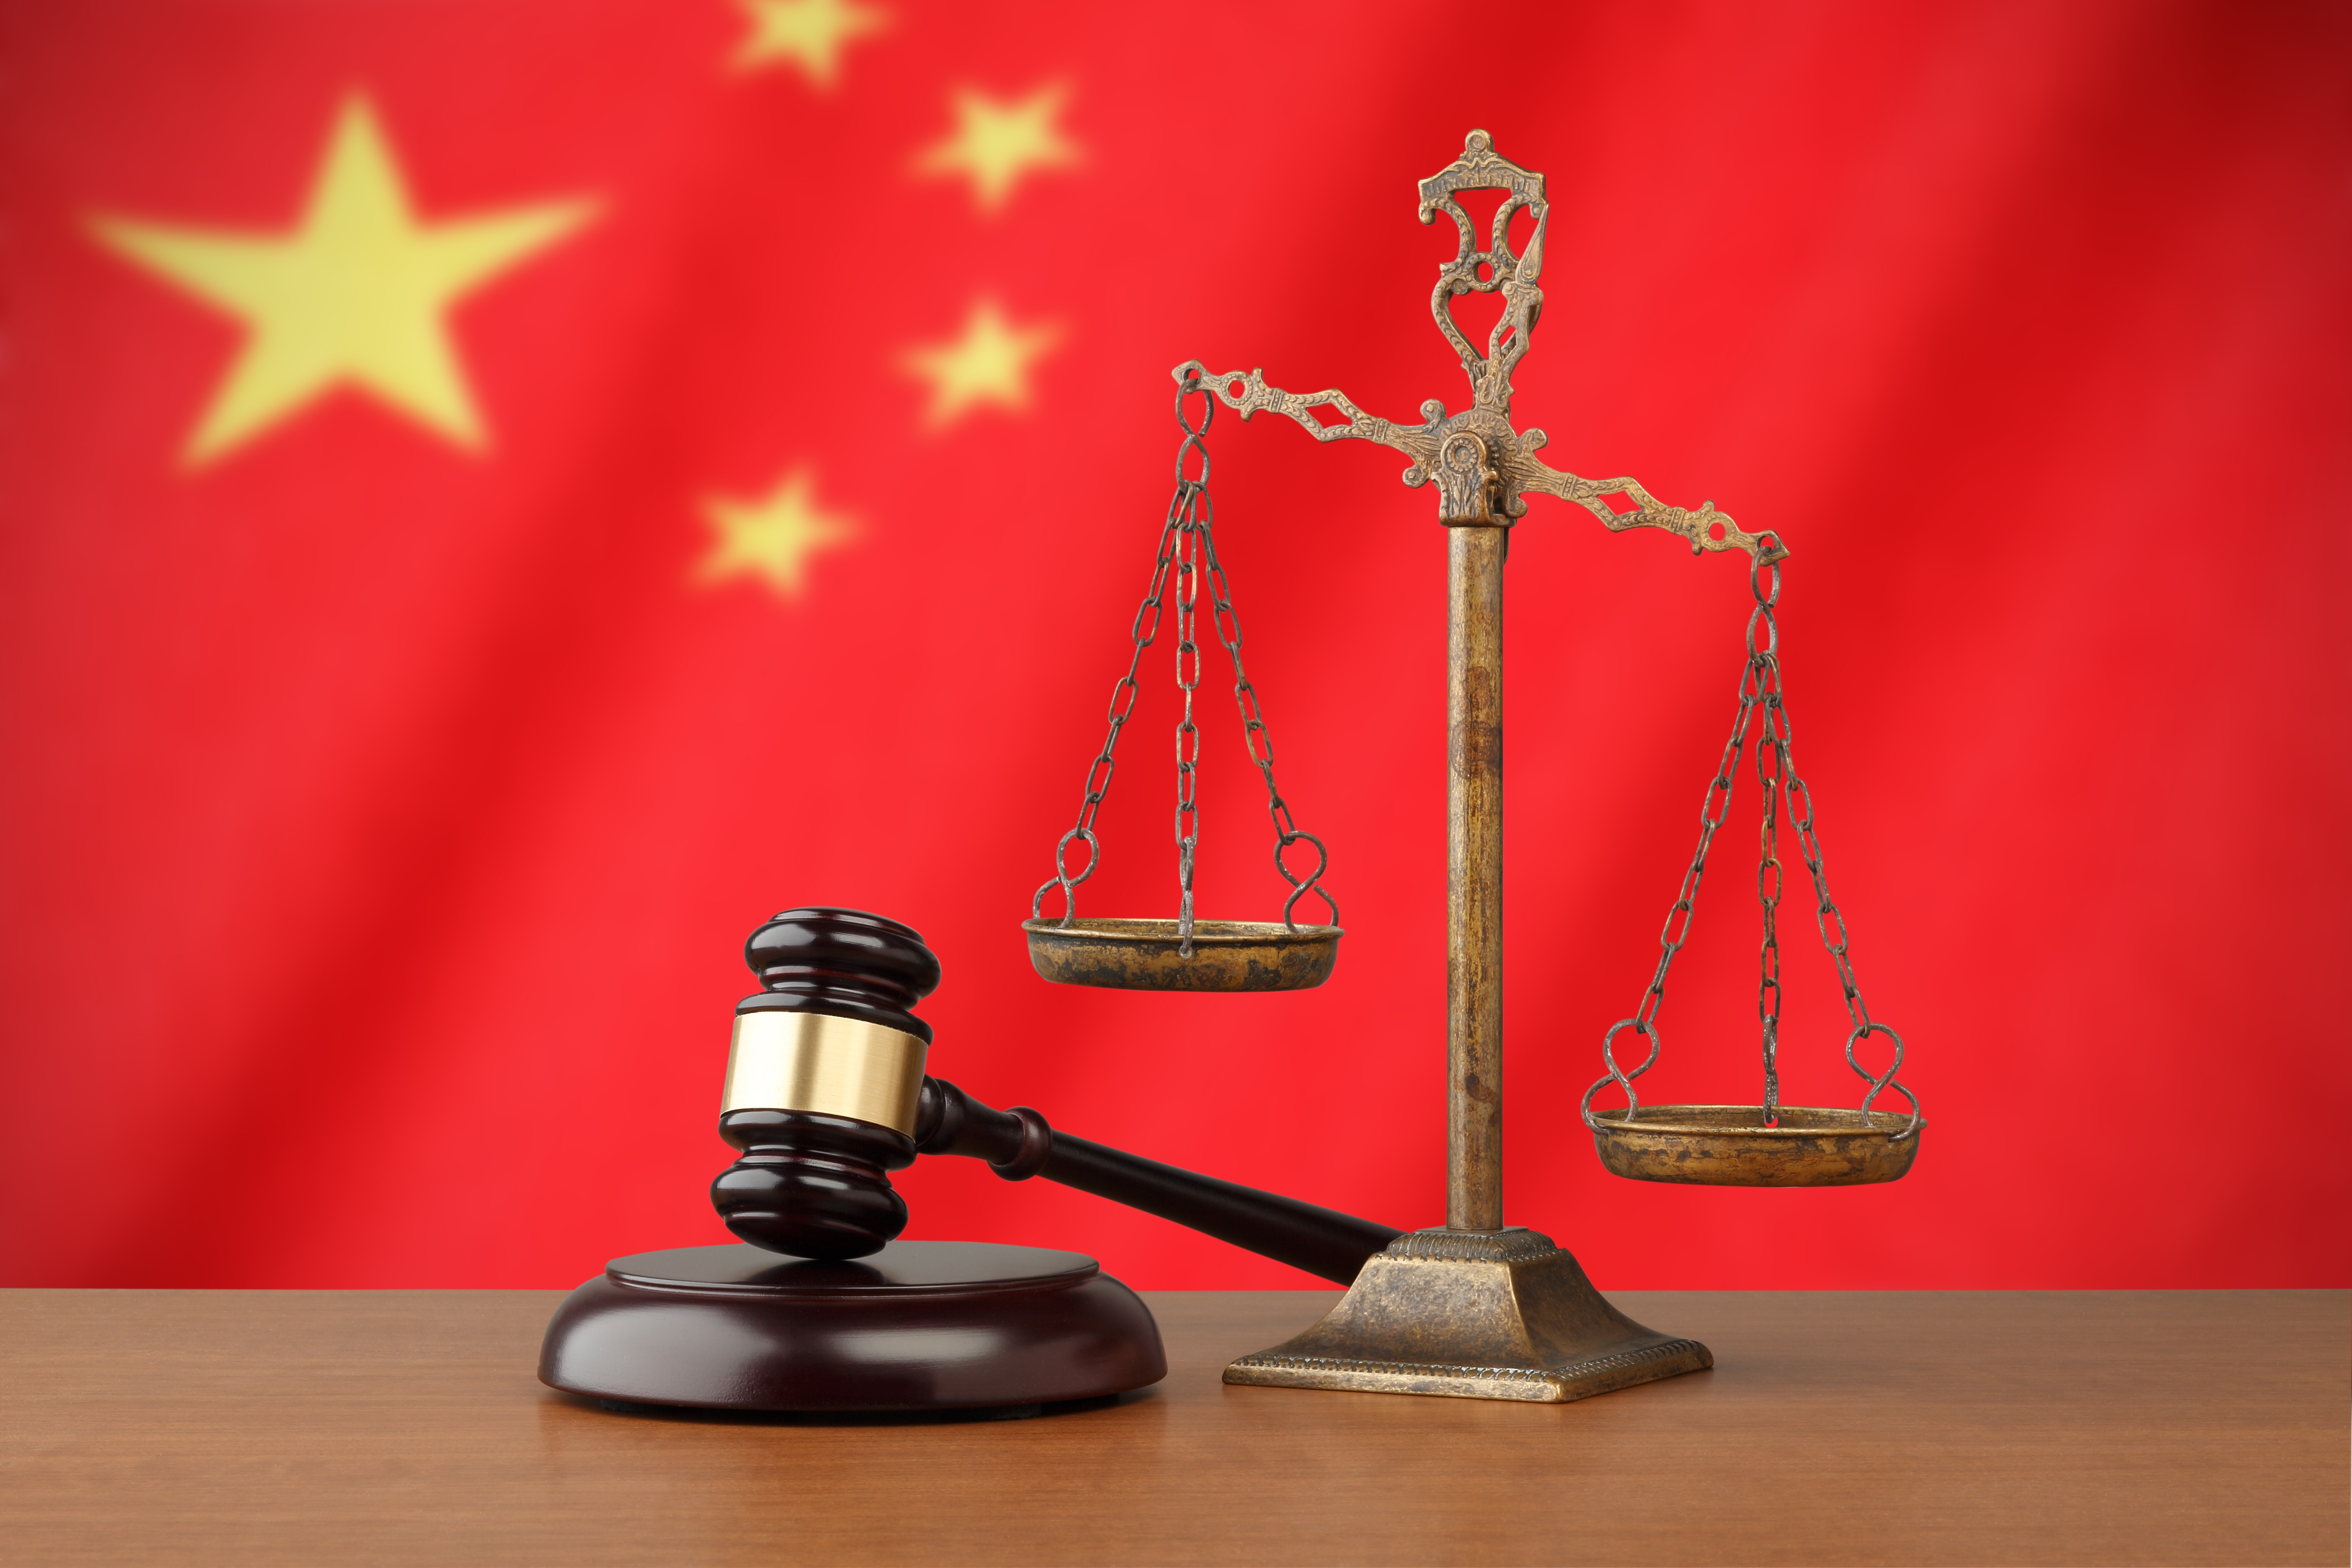 Chinese flag and golden scale with a judge's gavel